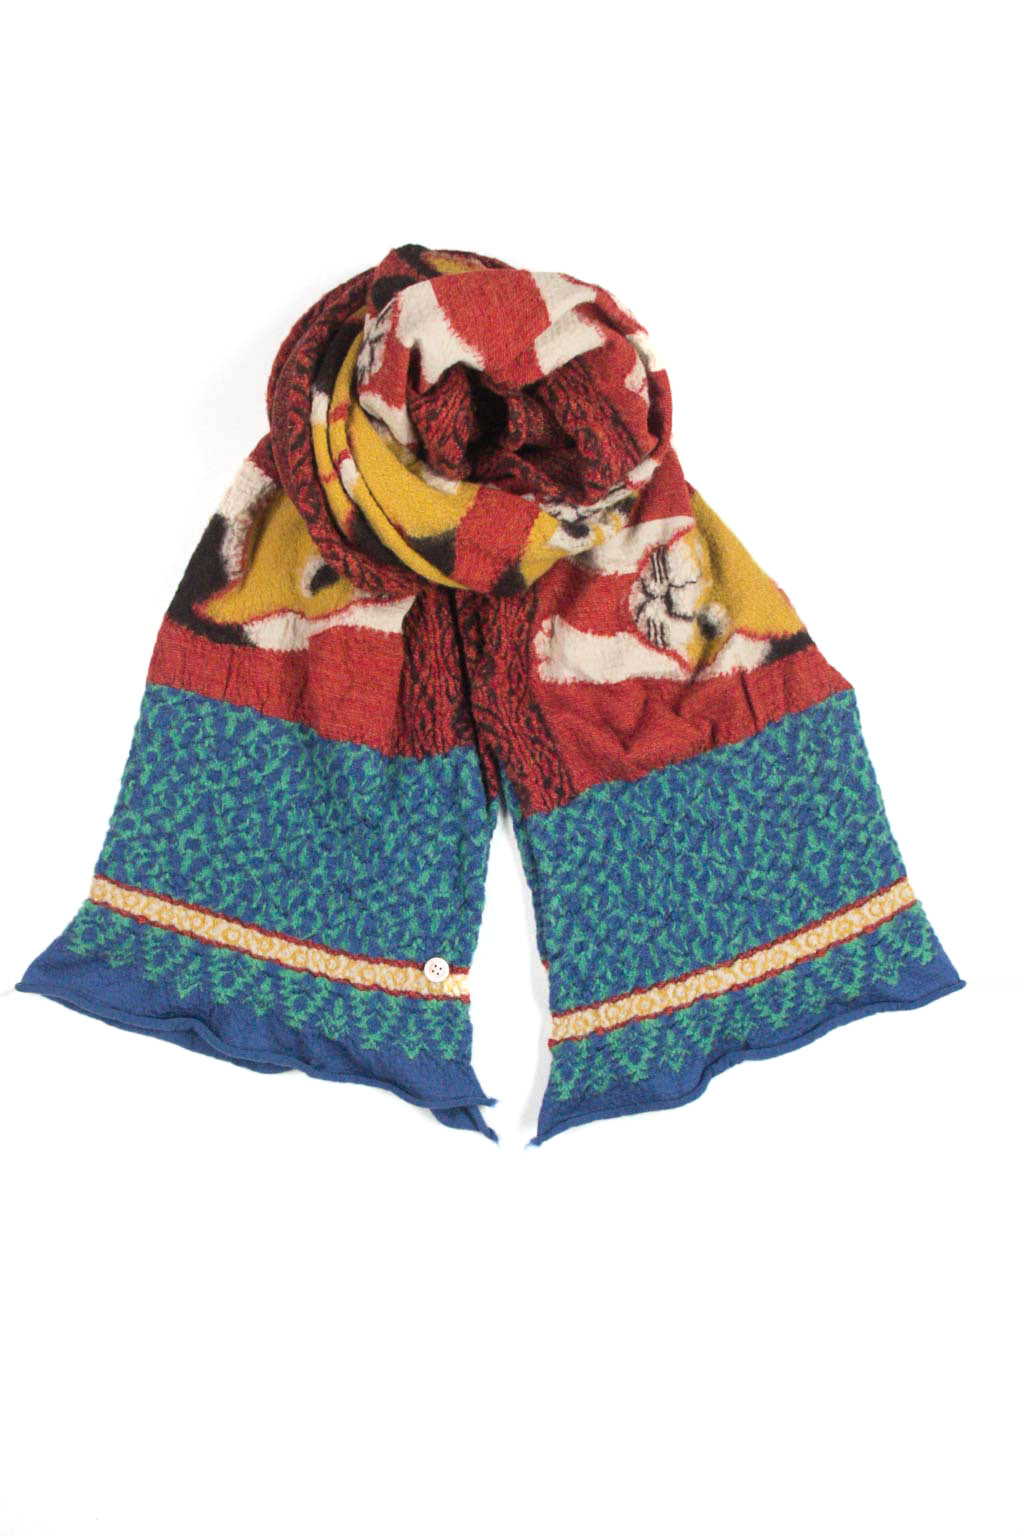 Kapital Compressed Wool Scarf JAPAN MIKE Cat - Red